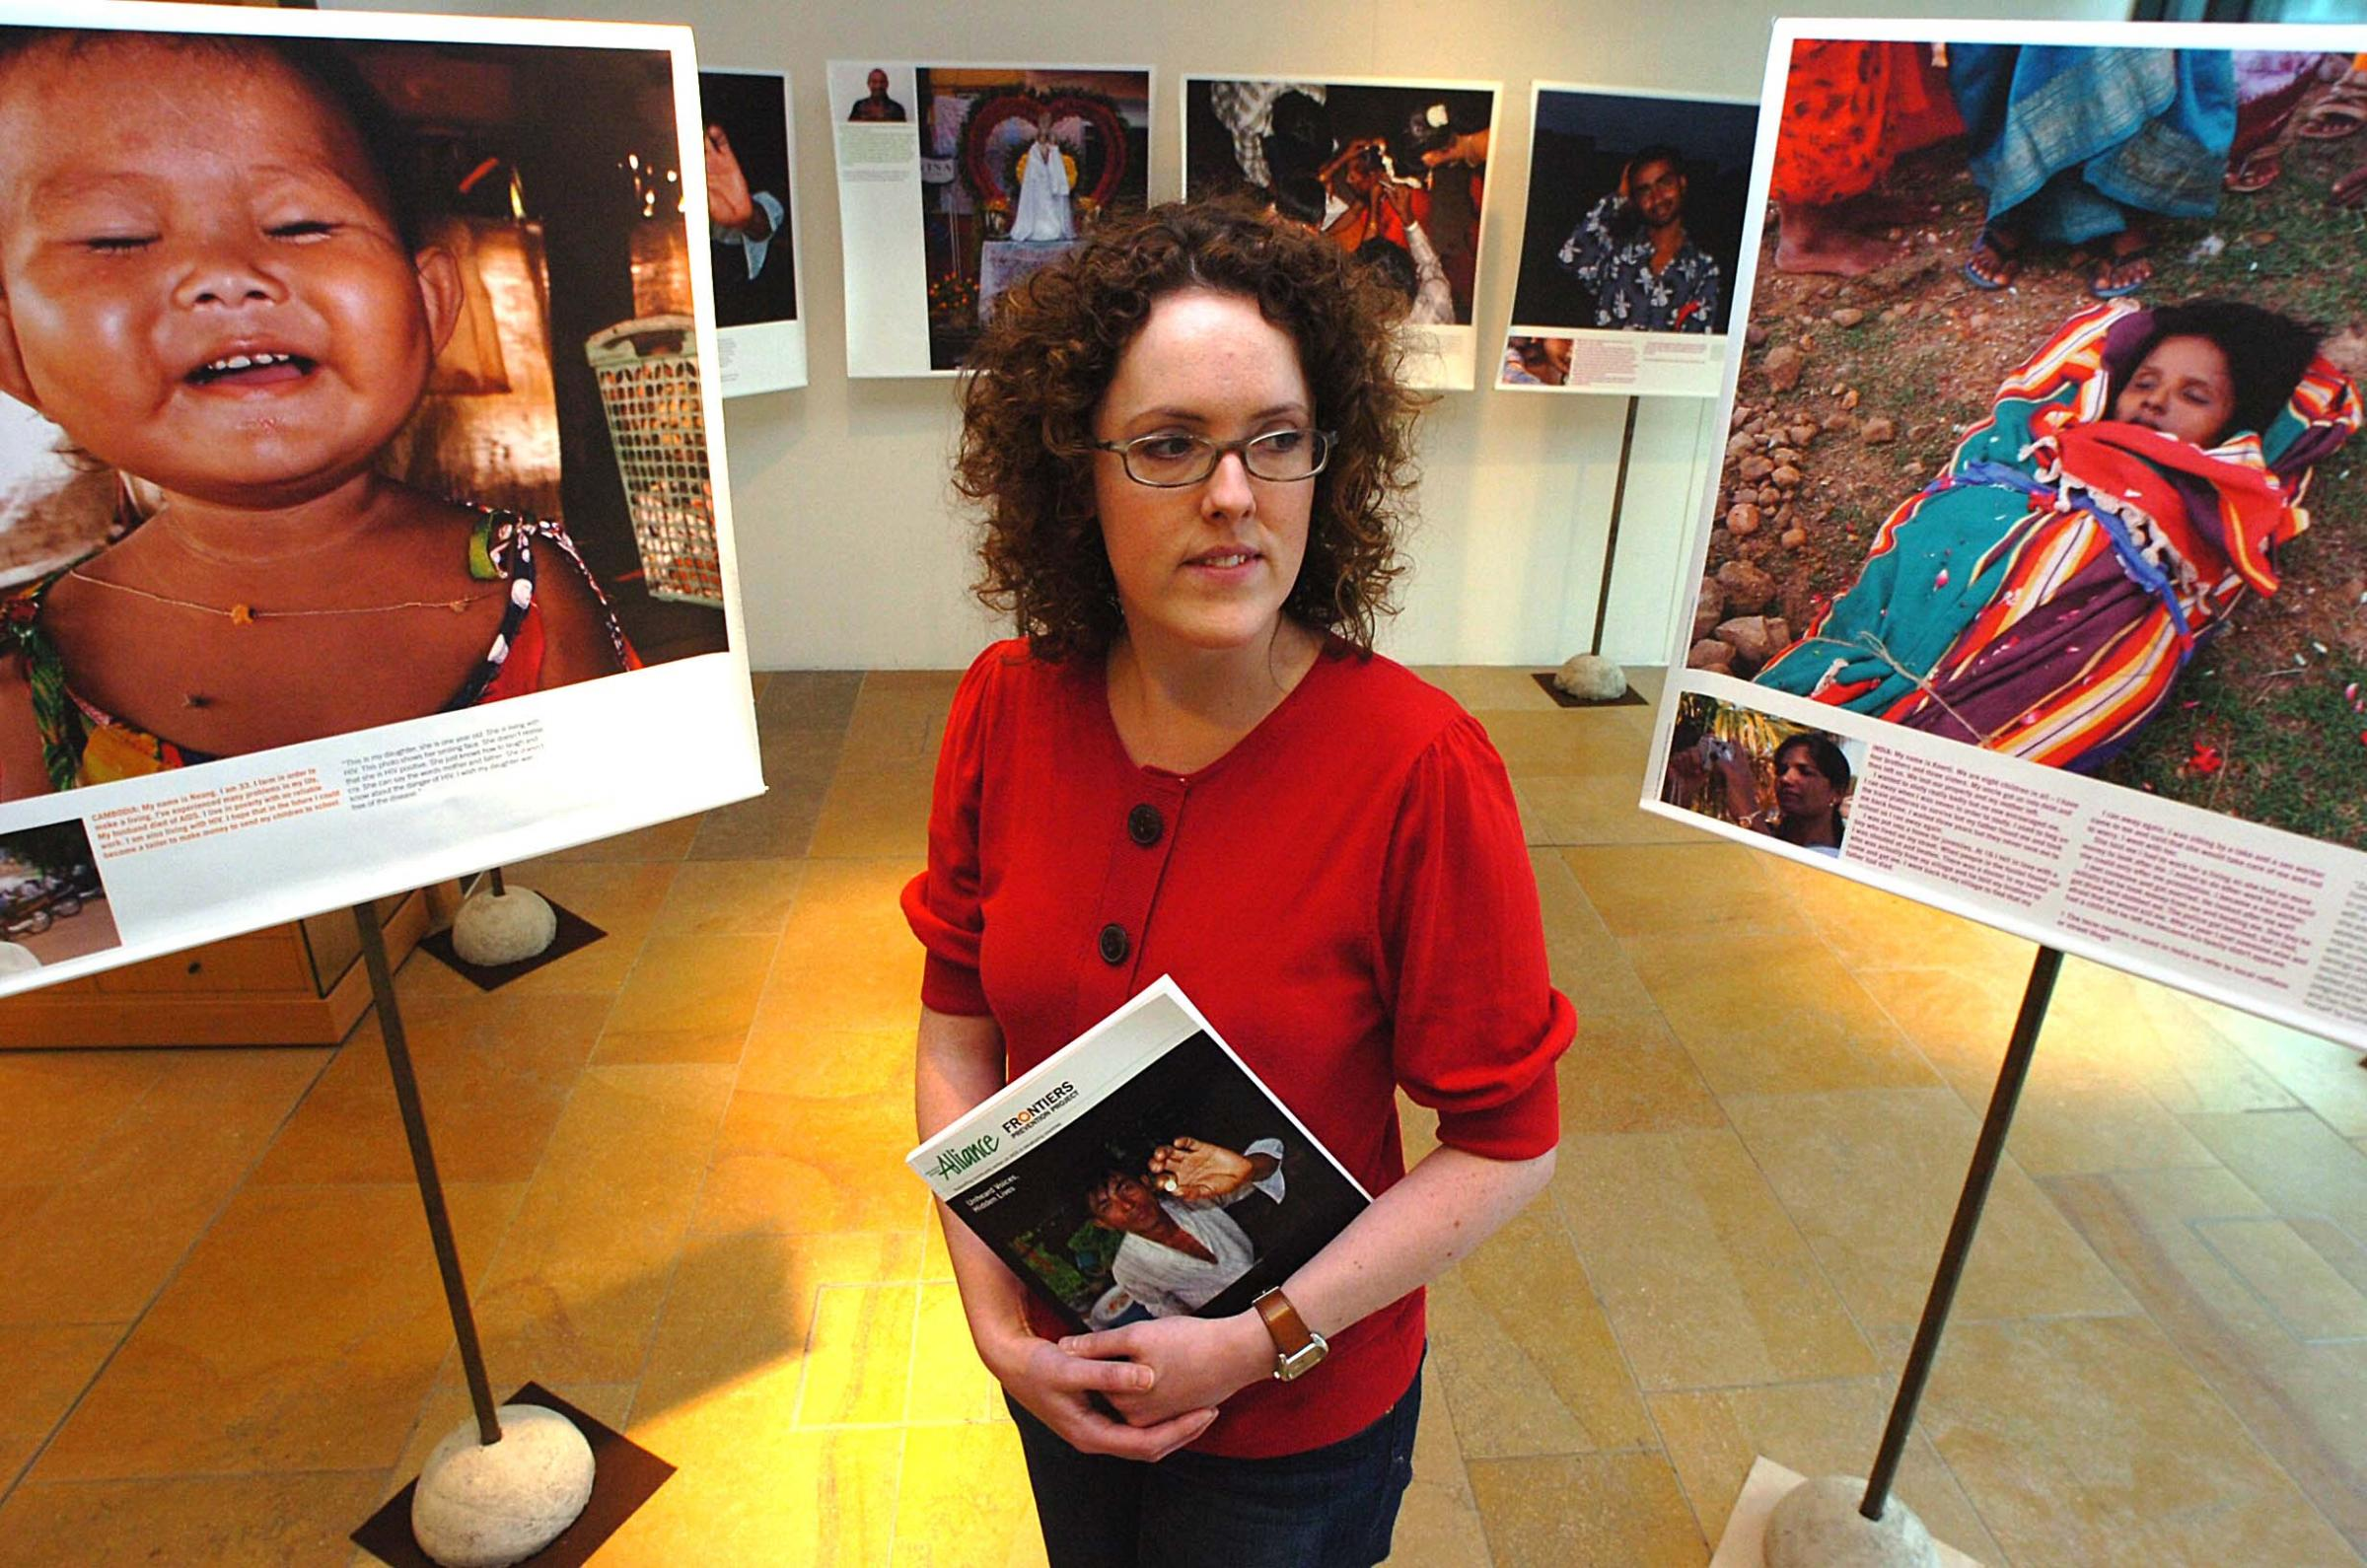 Rhian Evans of International HIV/Aids Alliance at an Aids exhibition at Jubilee Library, Brighton